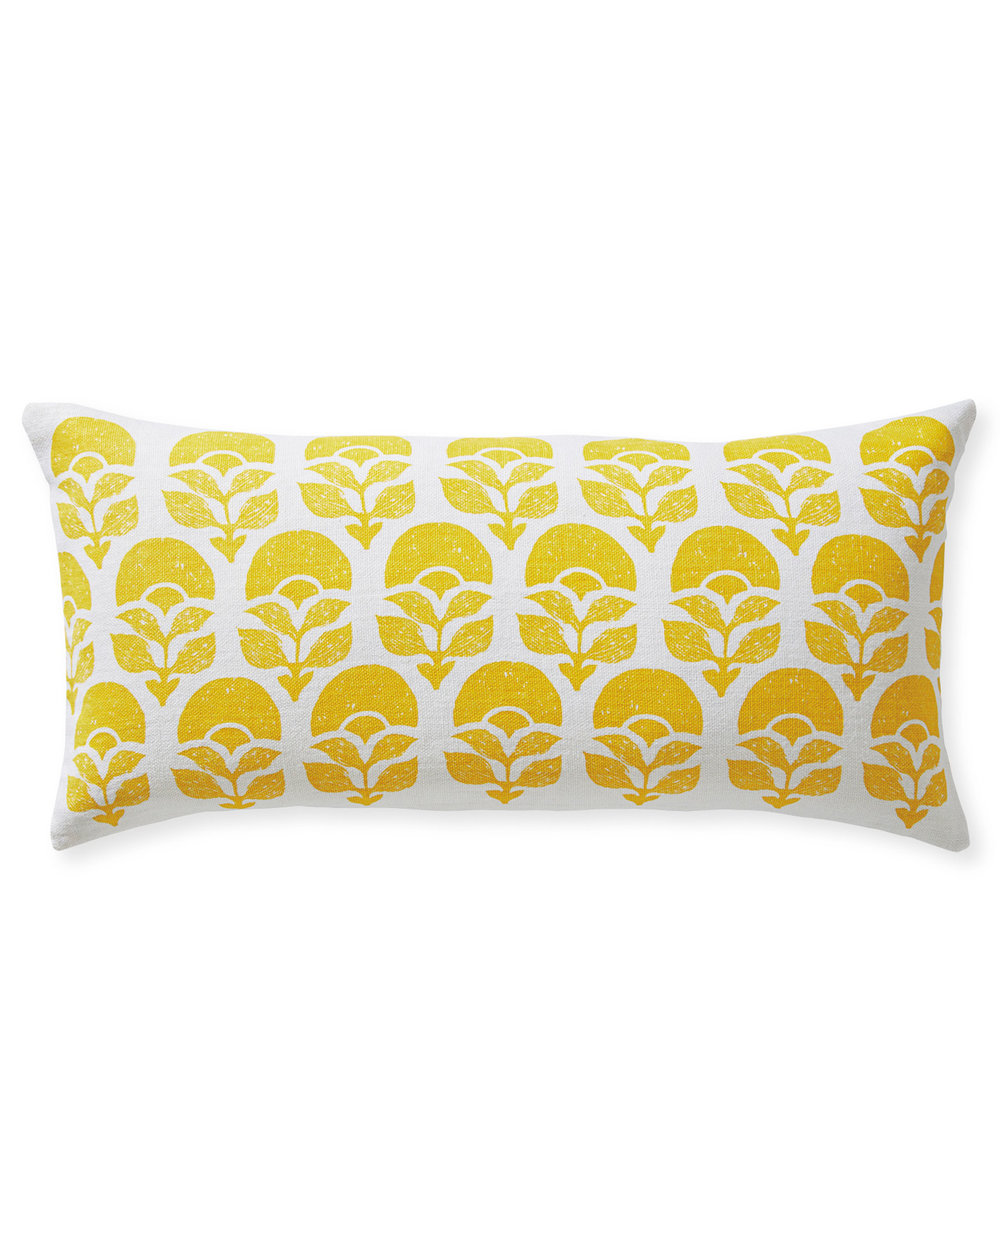 Dec_Pillow_Larkspur_Printed_14x30_Canary_Front_MV_Crop_SH.jpg